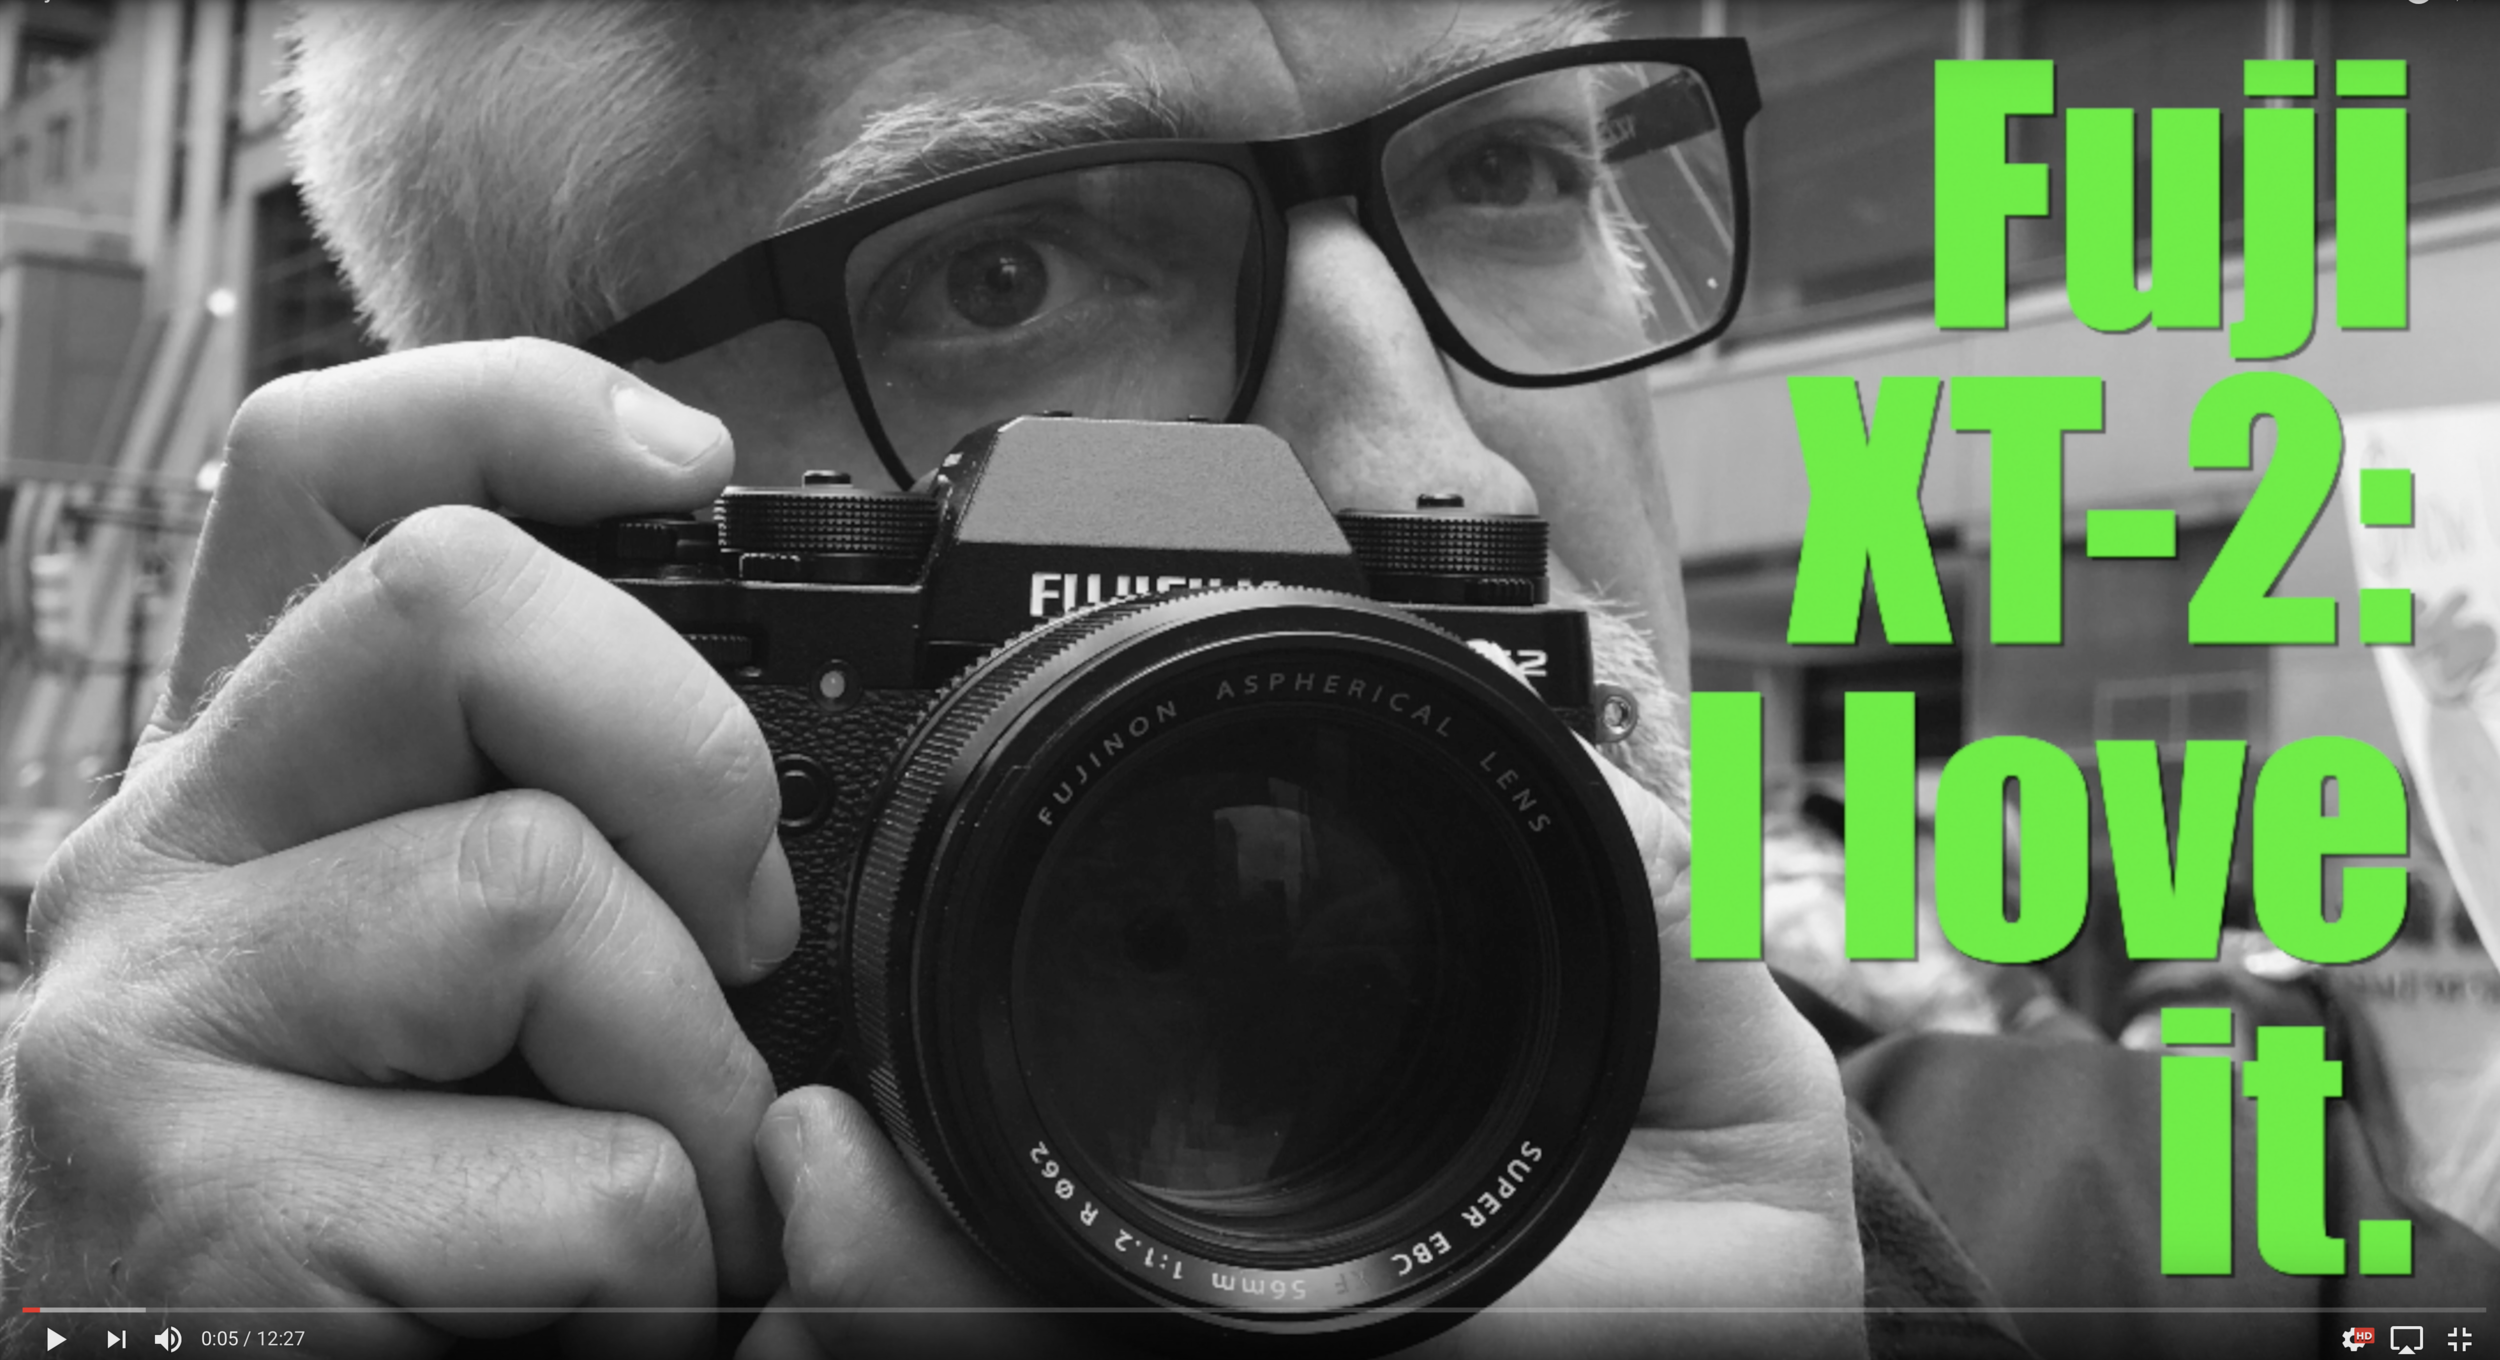 One of many new videos we've done recently, with increasing emphasis on Panasonic and Fuji.